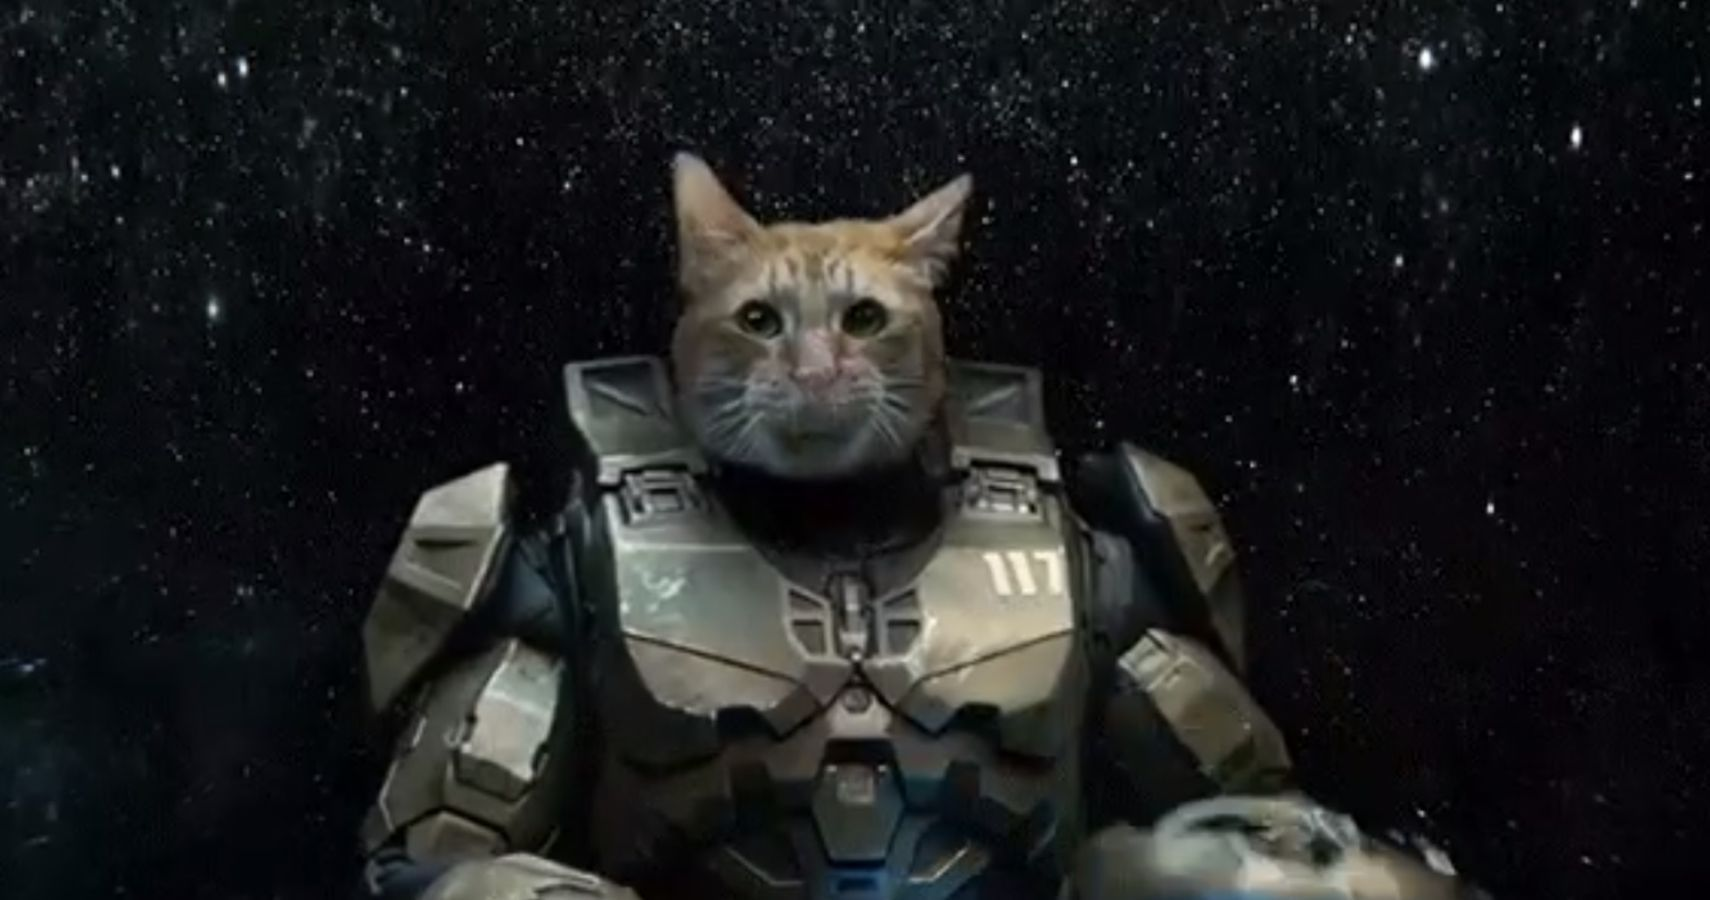 Halo Reveals Master Chief's Face (And He's A Cat)